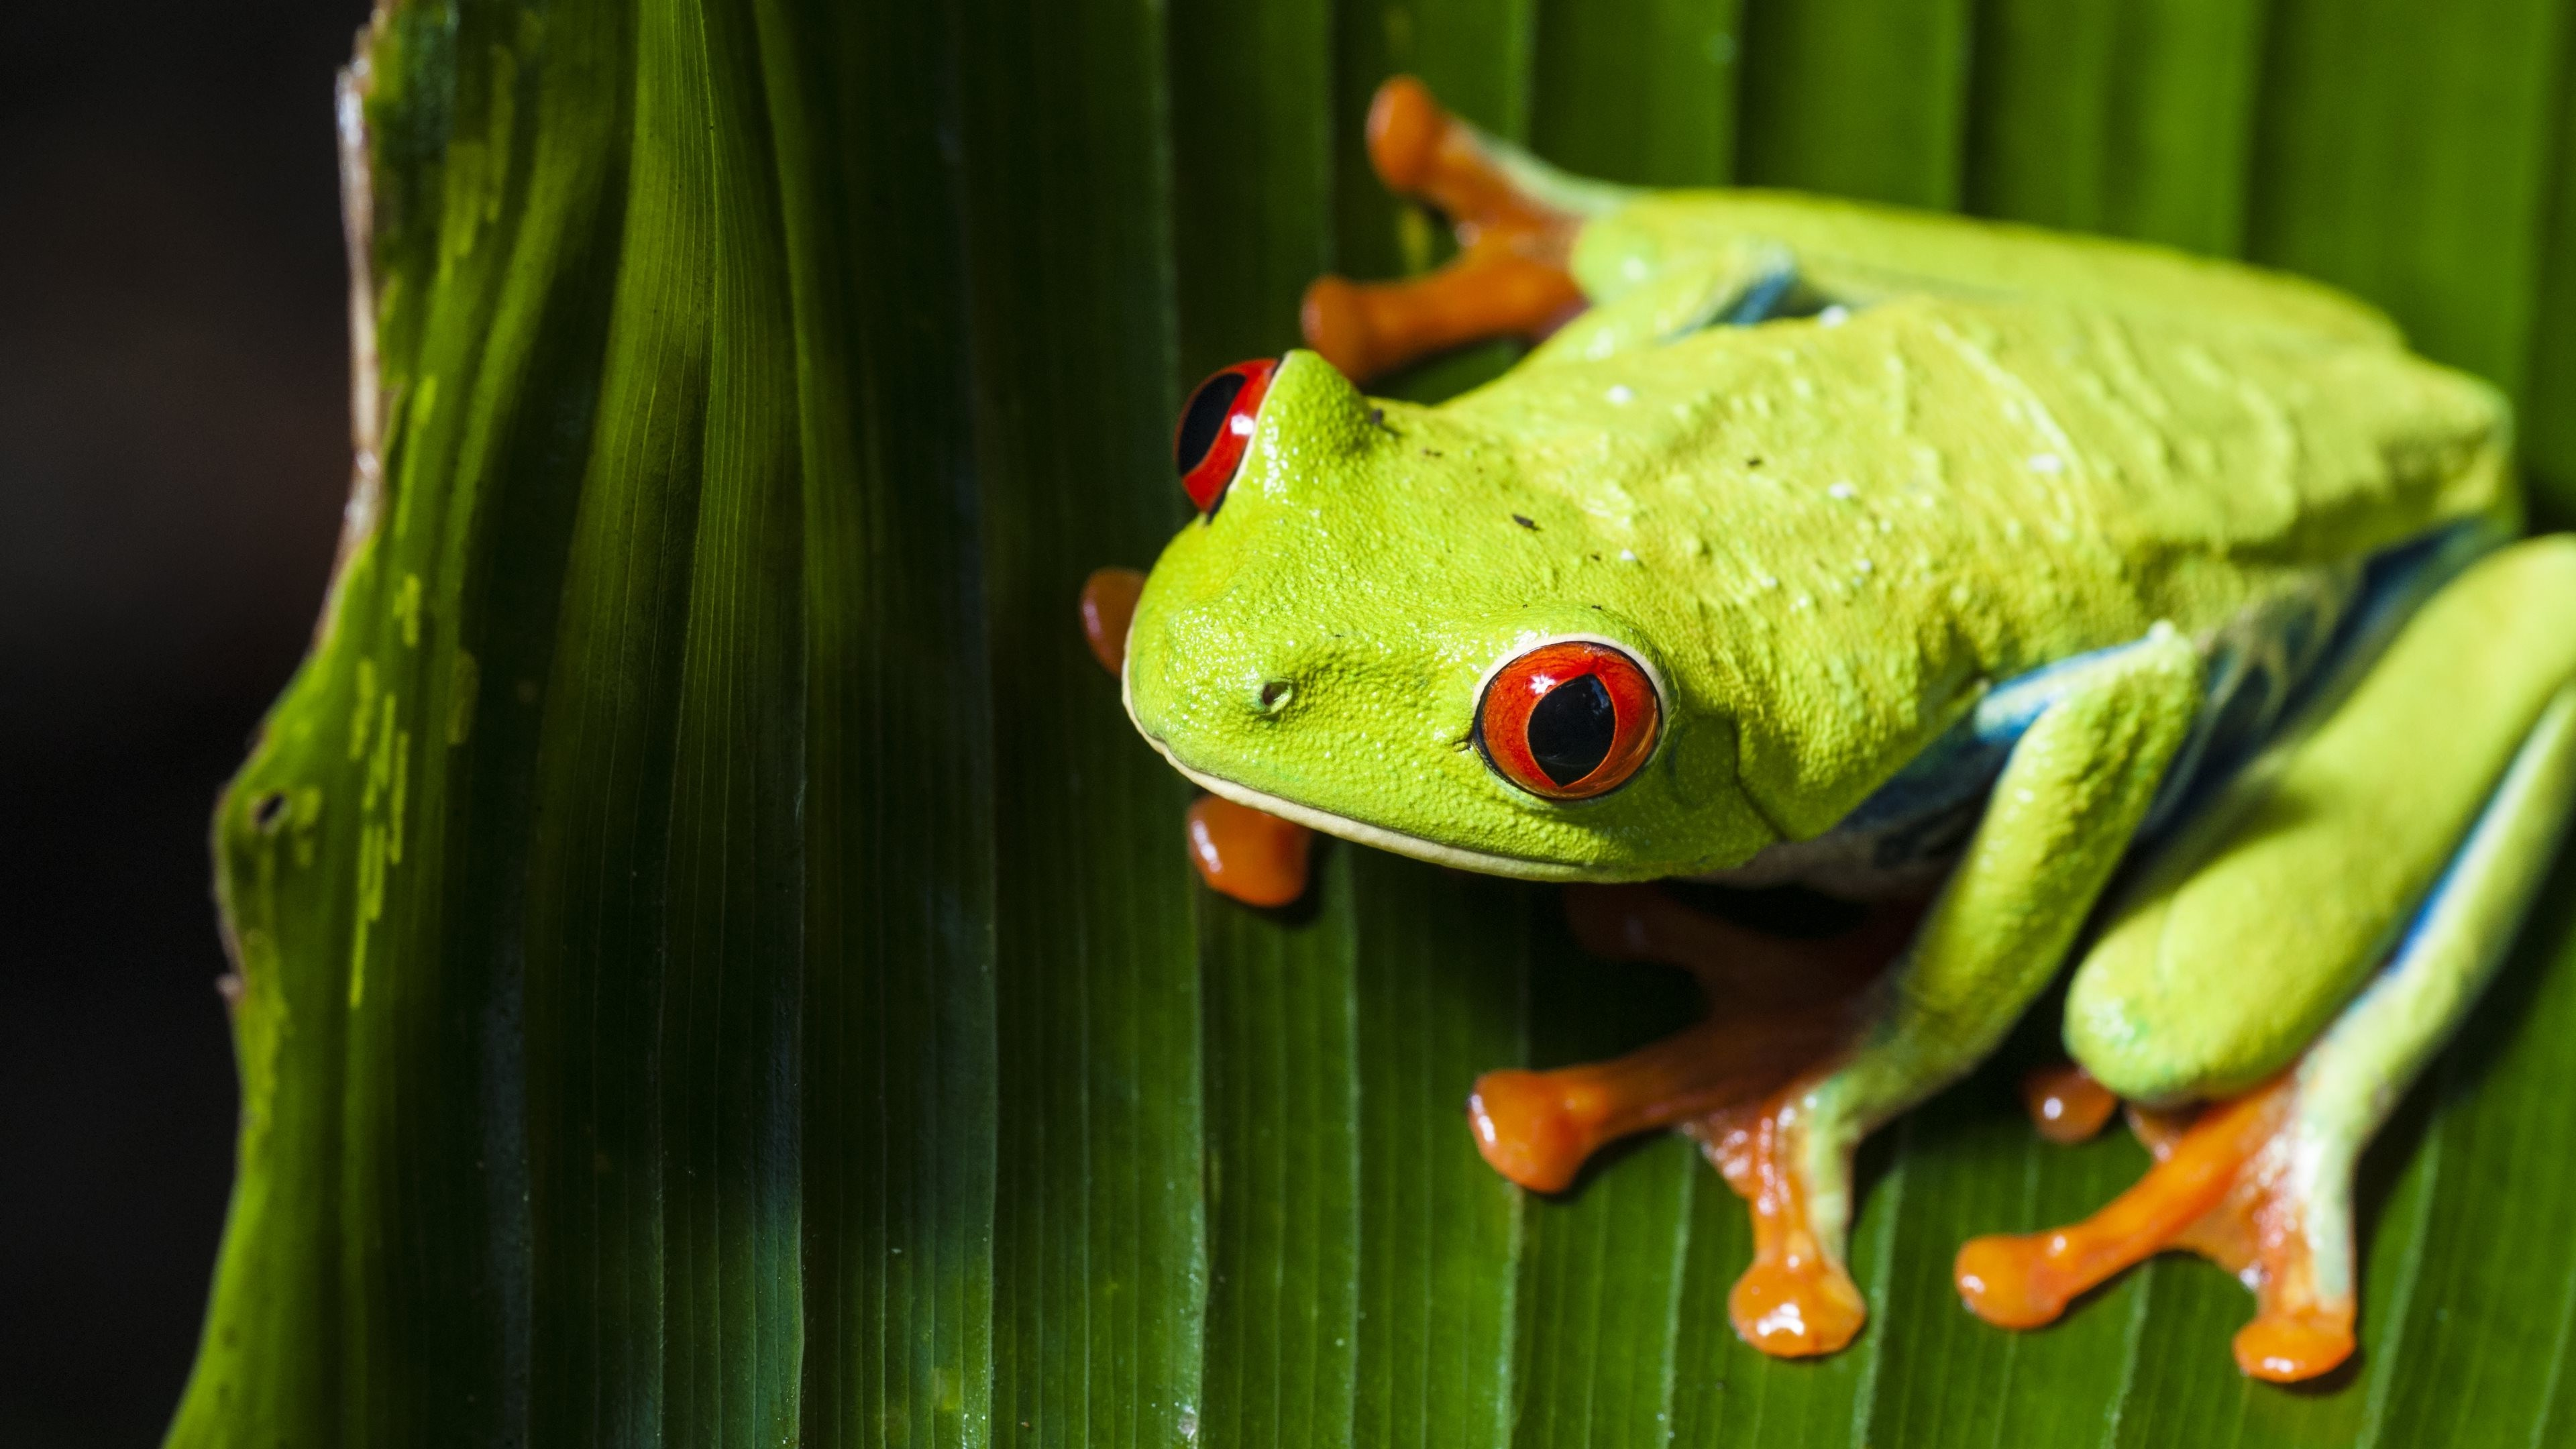 Res: 3840x2160, animals, Nature, Frog, Macro, Red Eyed Tree Frogs, Amphibian Wallpapers HD  / Desktop and Mobile Backgrounds